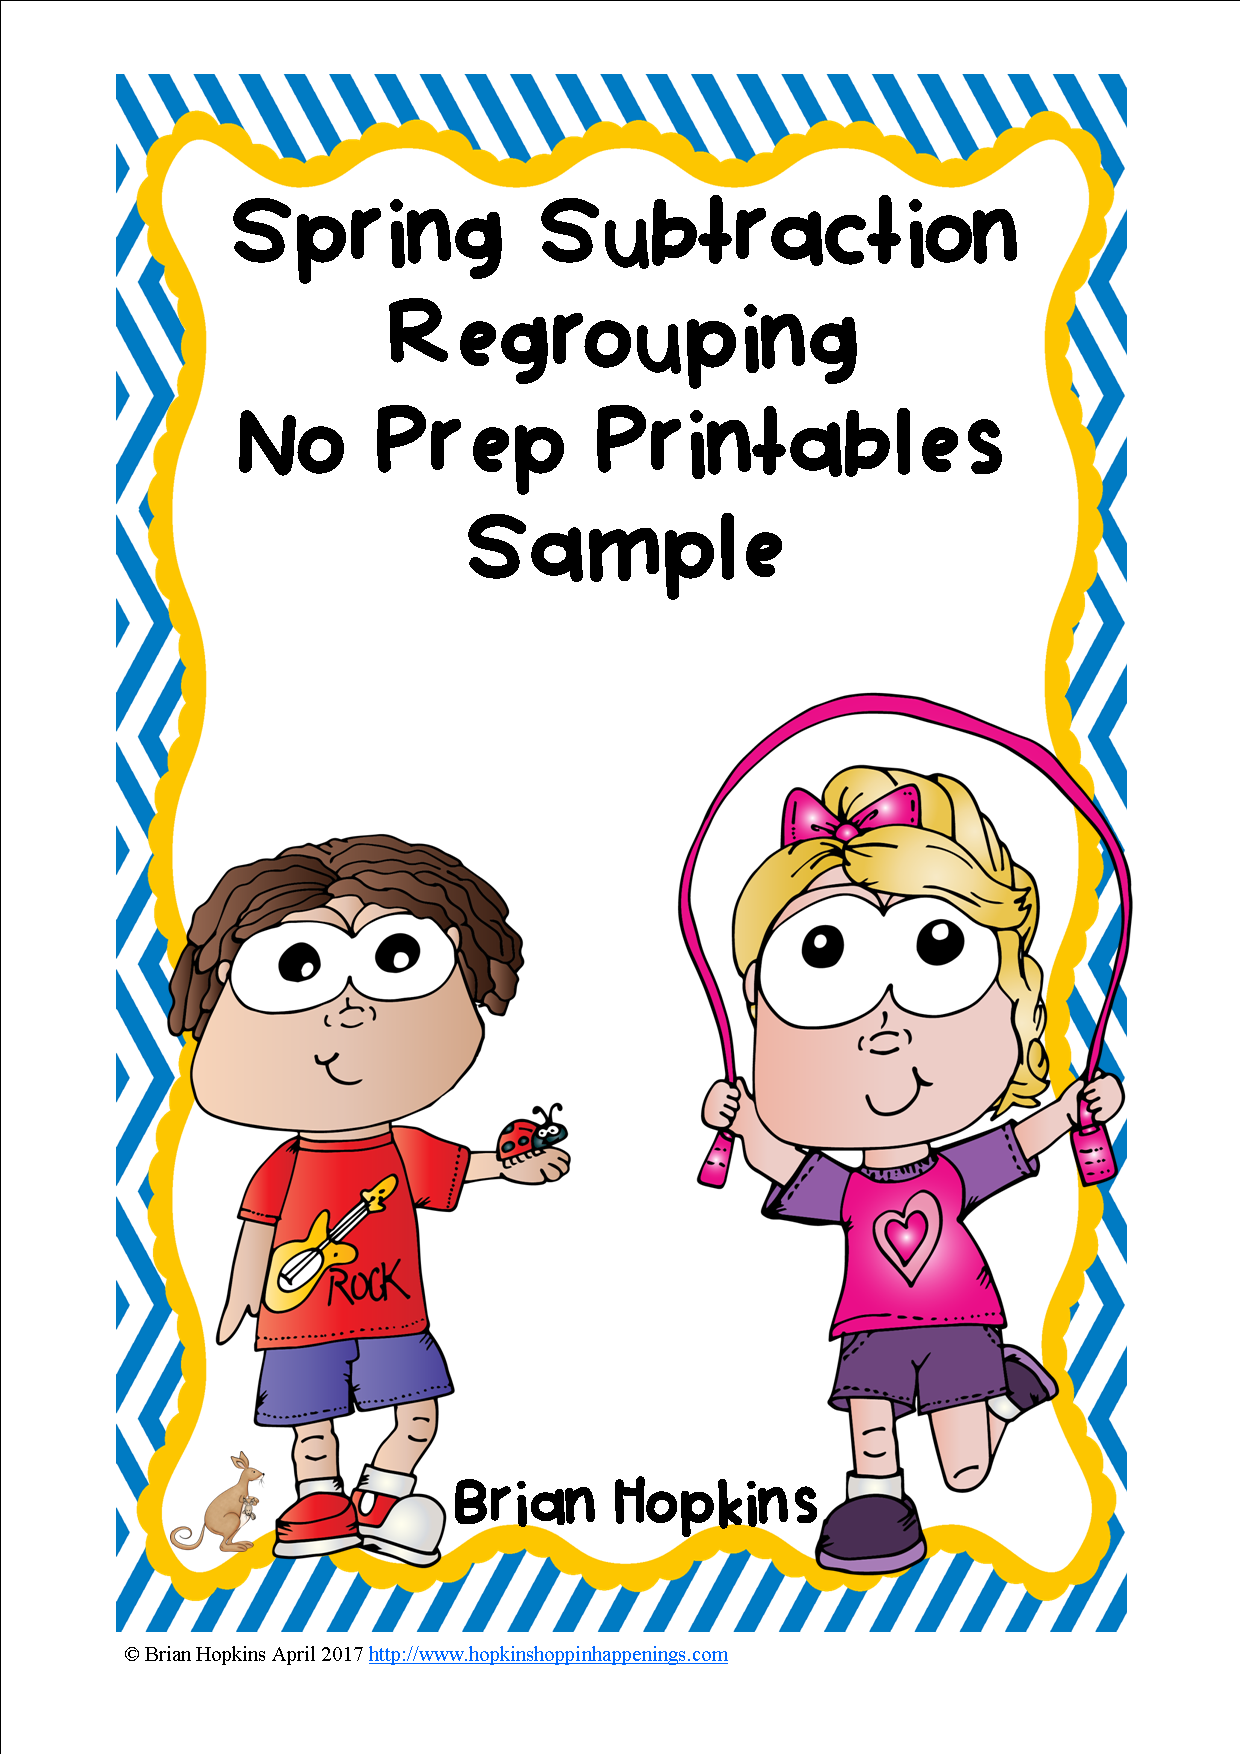 Spring Subtraction Regrouping No Prep Printables Sample